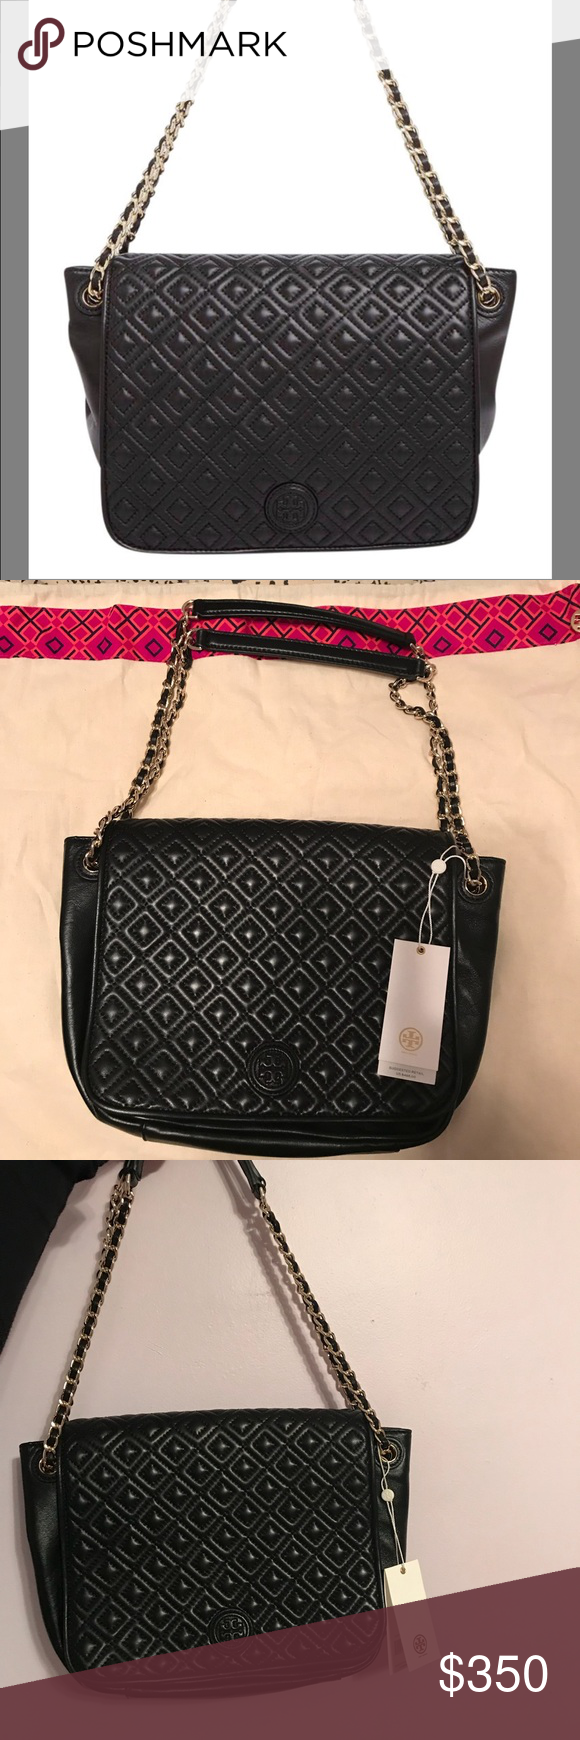 3379f23f491d NWT Tory Burch Marion Quilted Flap Shoulder Bag -NWT Tory Burch Marion  Quilted Flap Shoulder Bag in the color black with gold hardware -9